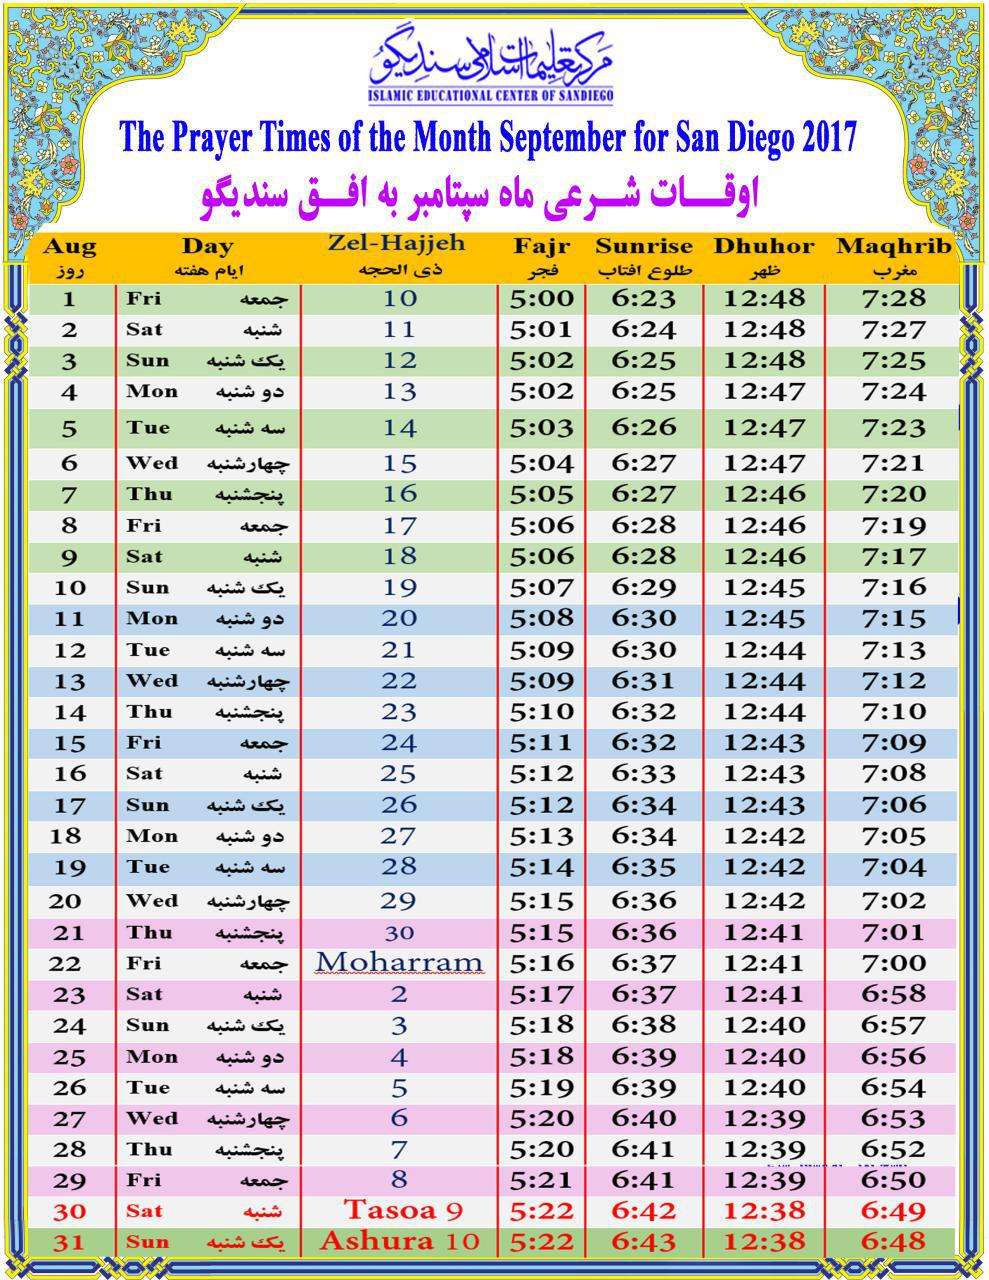 The Prayer Times Of The Month September